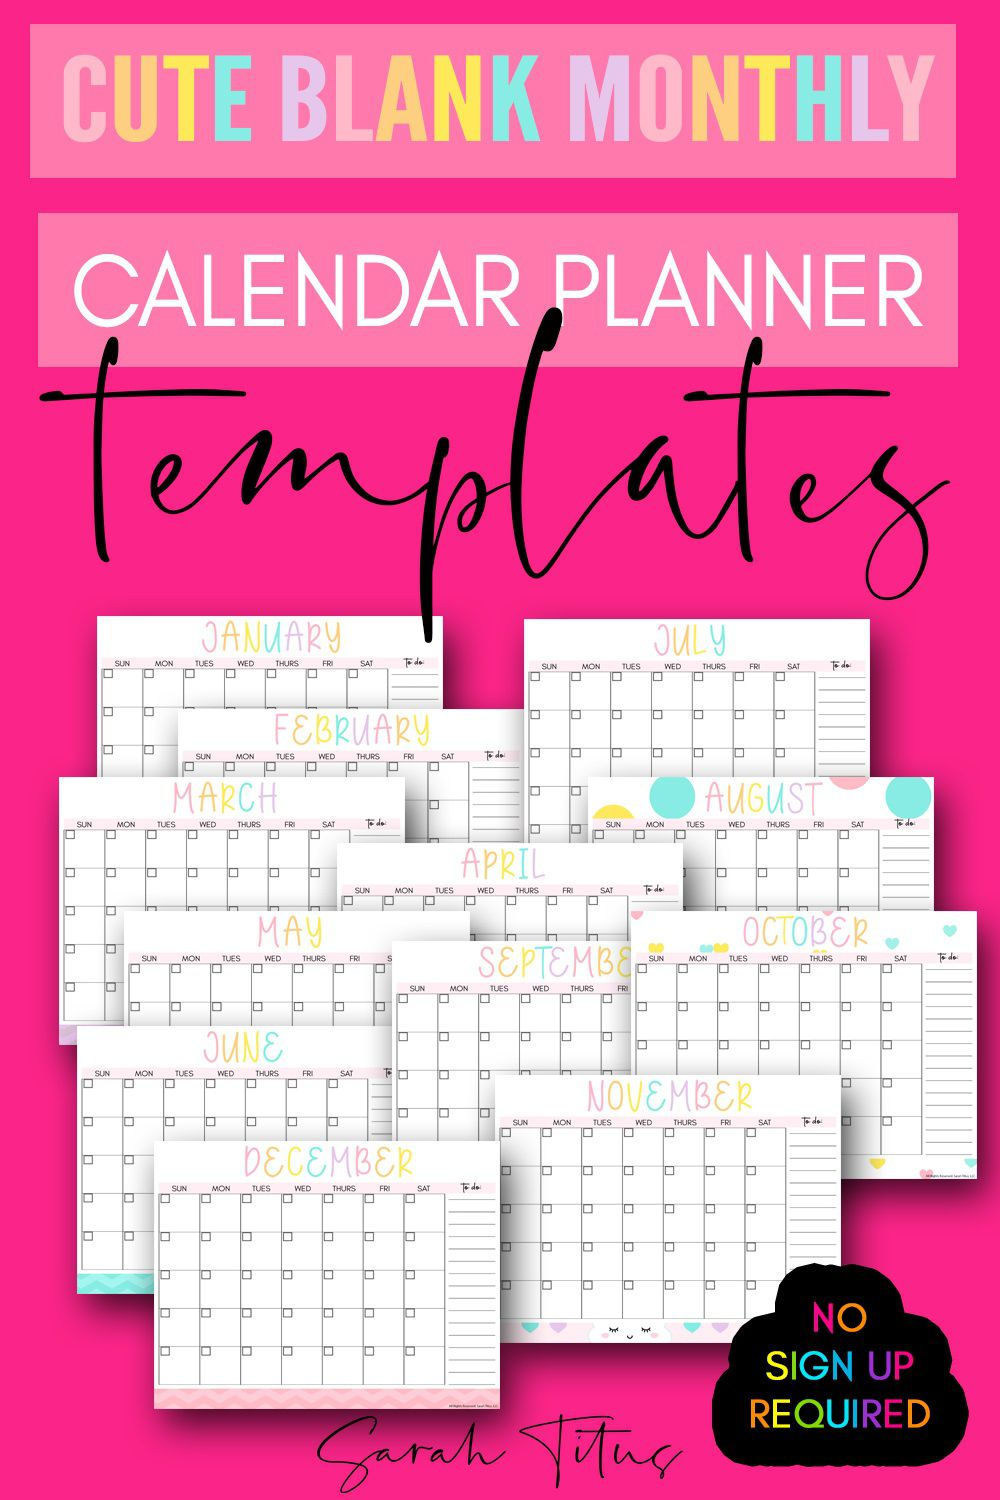 008 Remarkable Free Printable Blank Monthly Calendar Template Picture Full